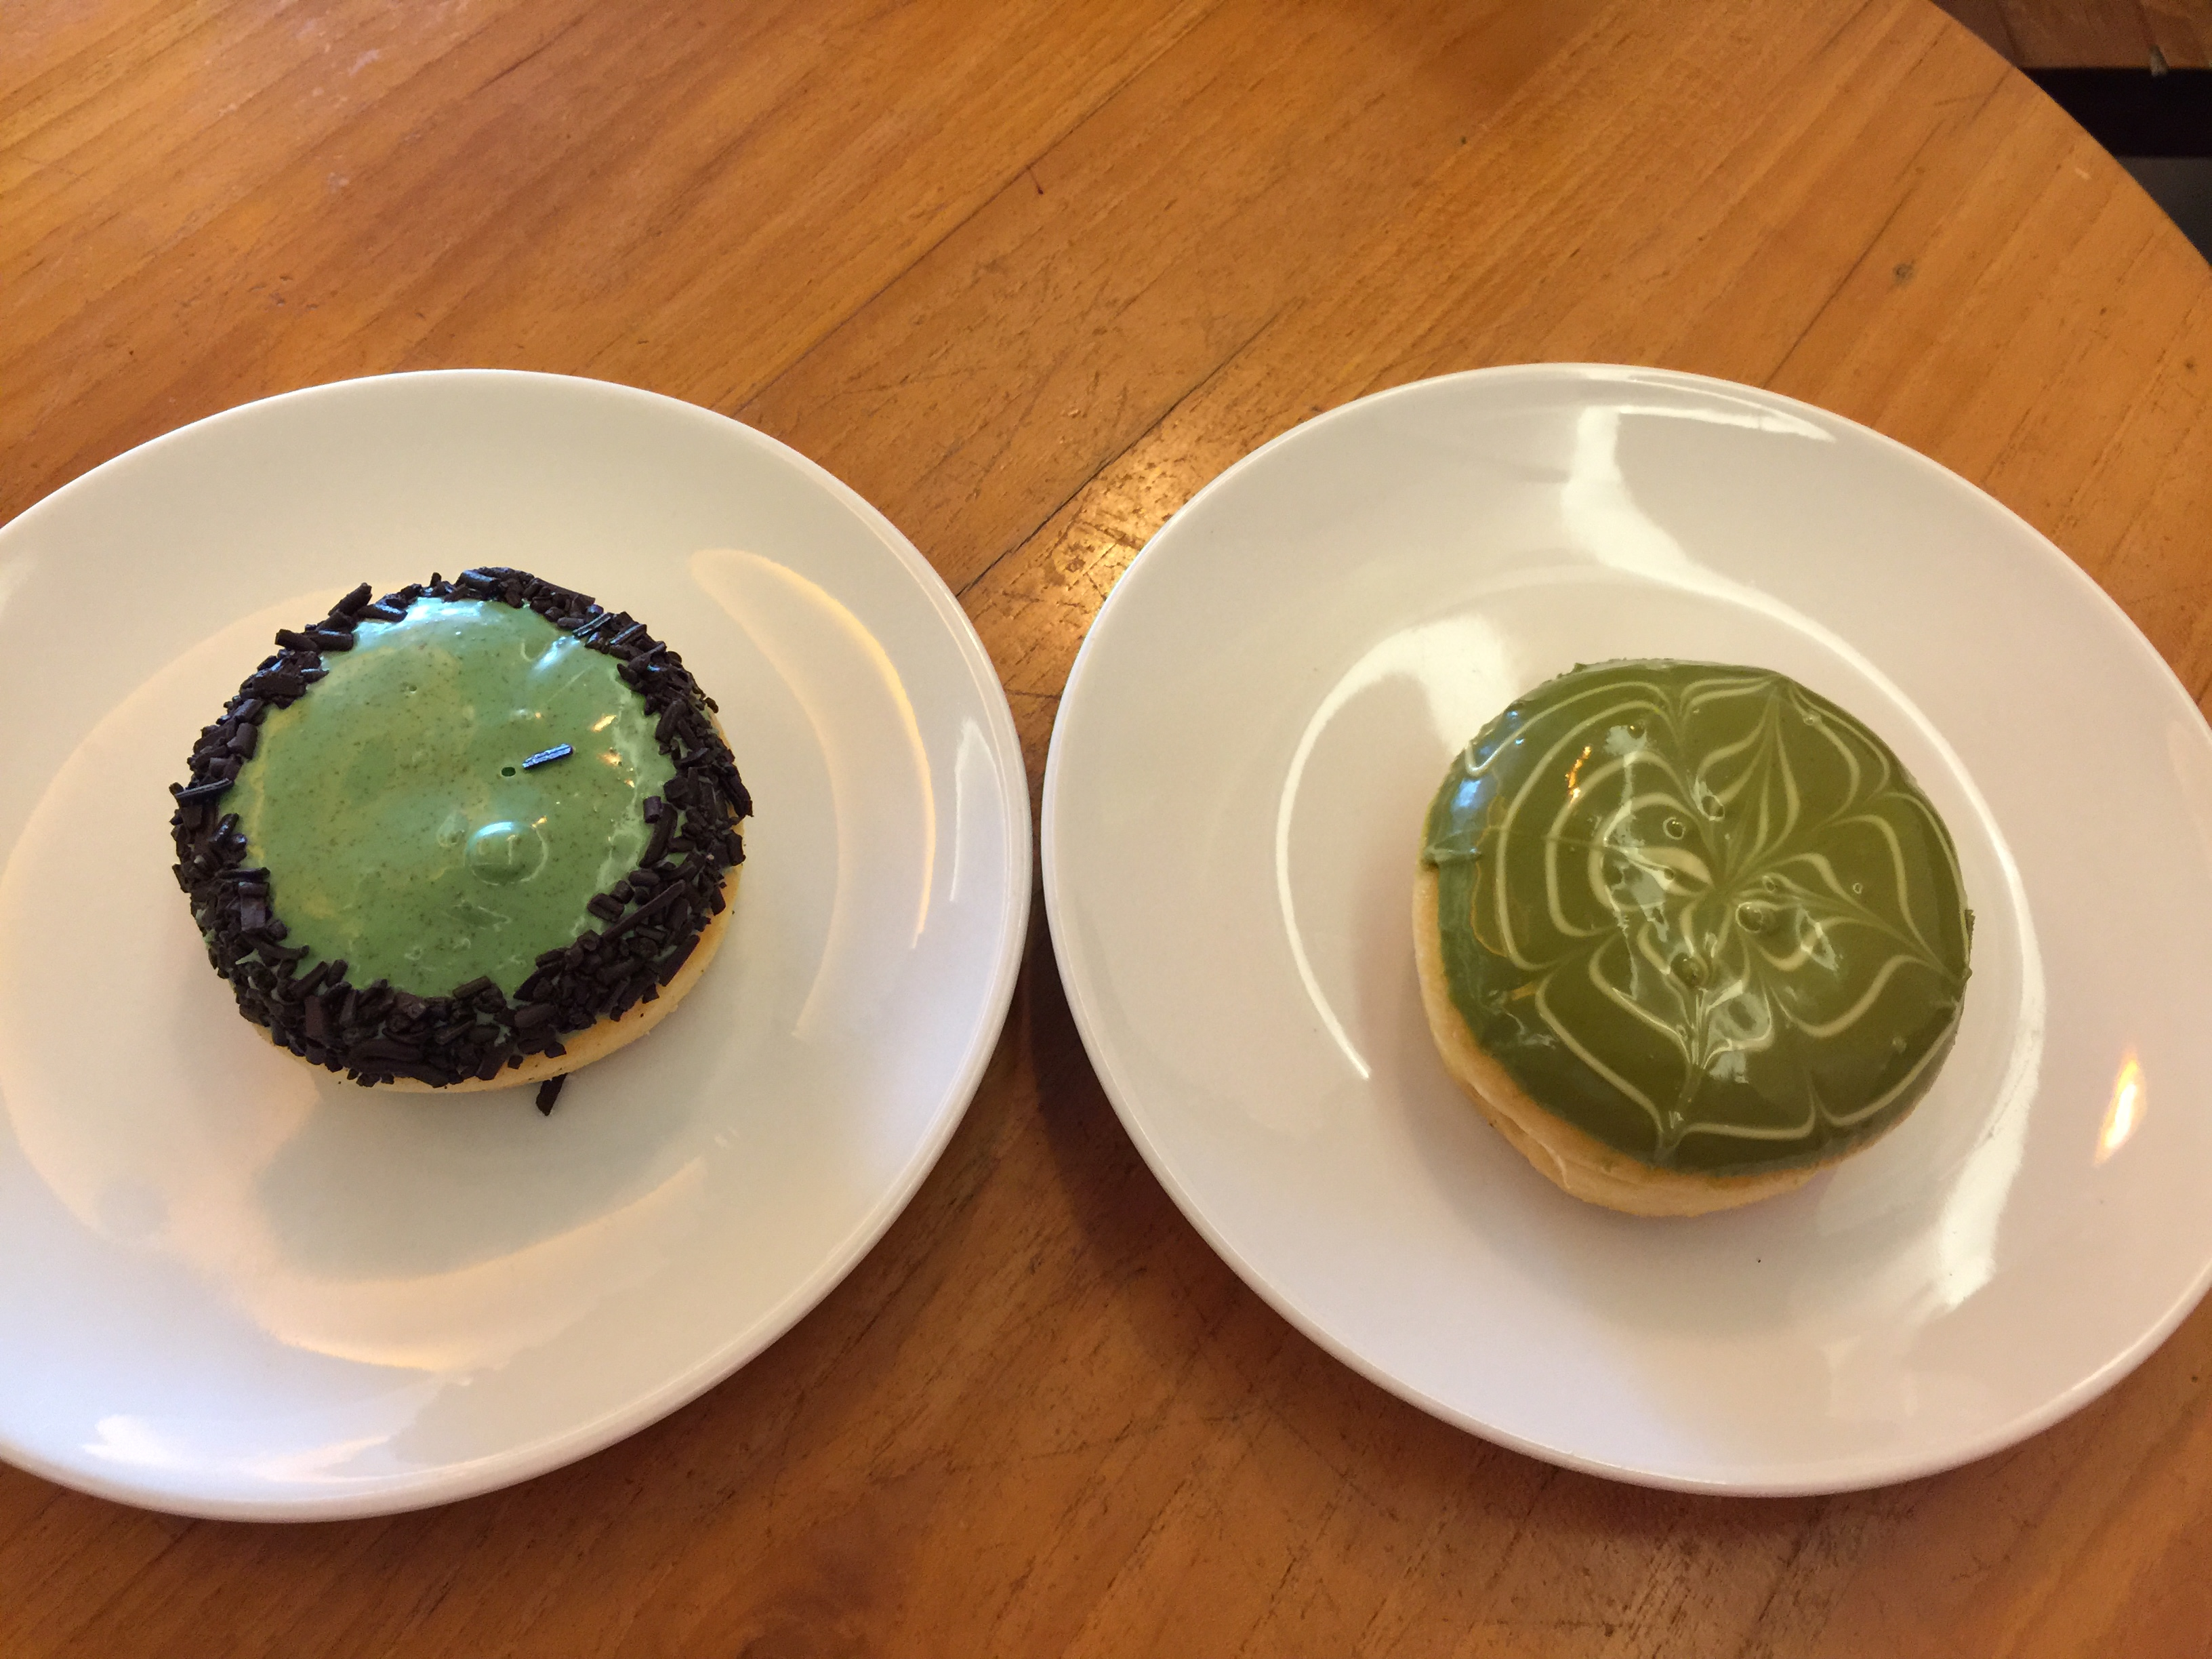 JCo Avocado flavored donuts